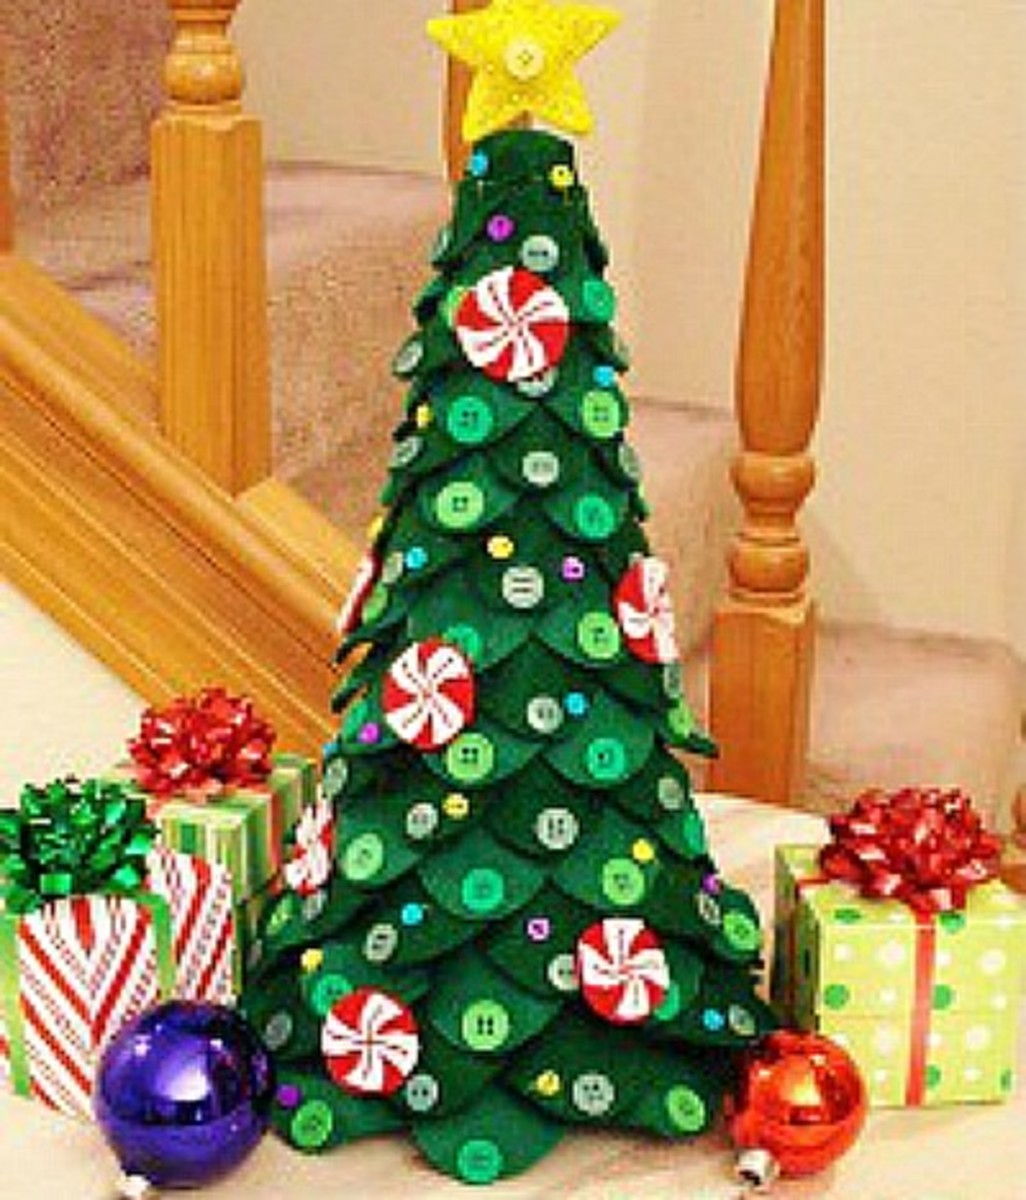 57 stunning diy tabletop tree ideas feltmagnet make christmas tree wall art youll want to use year after year these are easy to customize so you can make them for yourself or as a gift for someone solutioingenieria Image collections